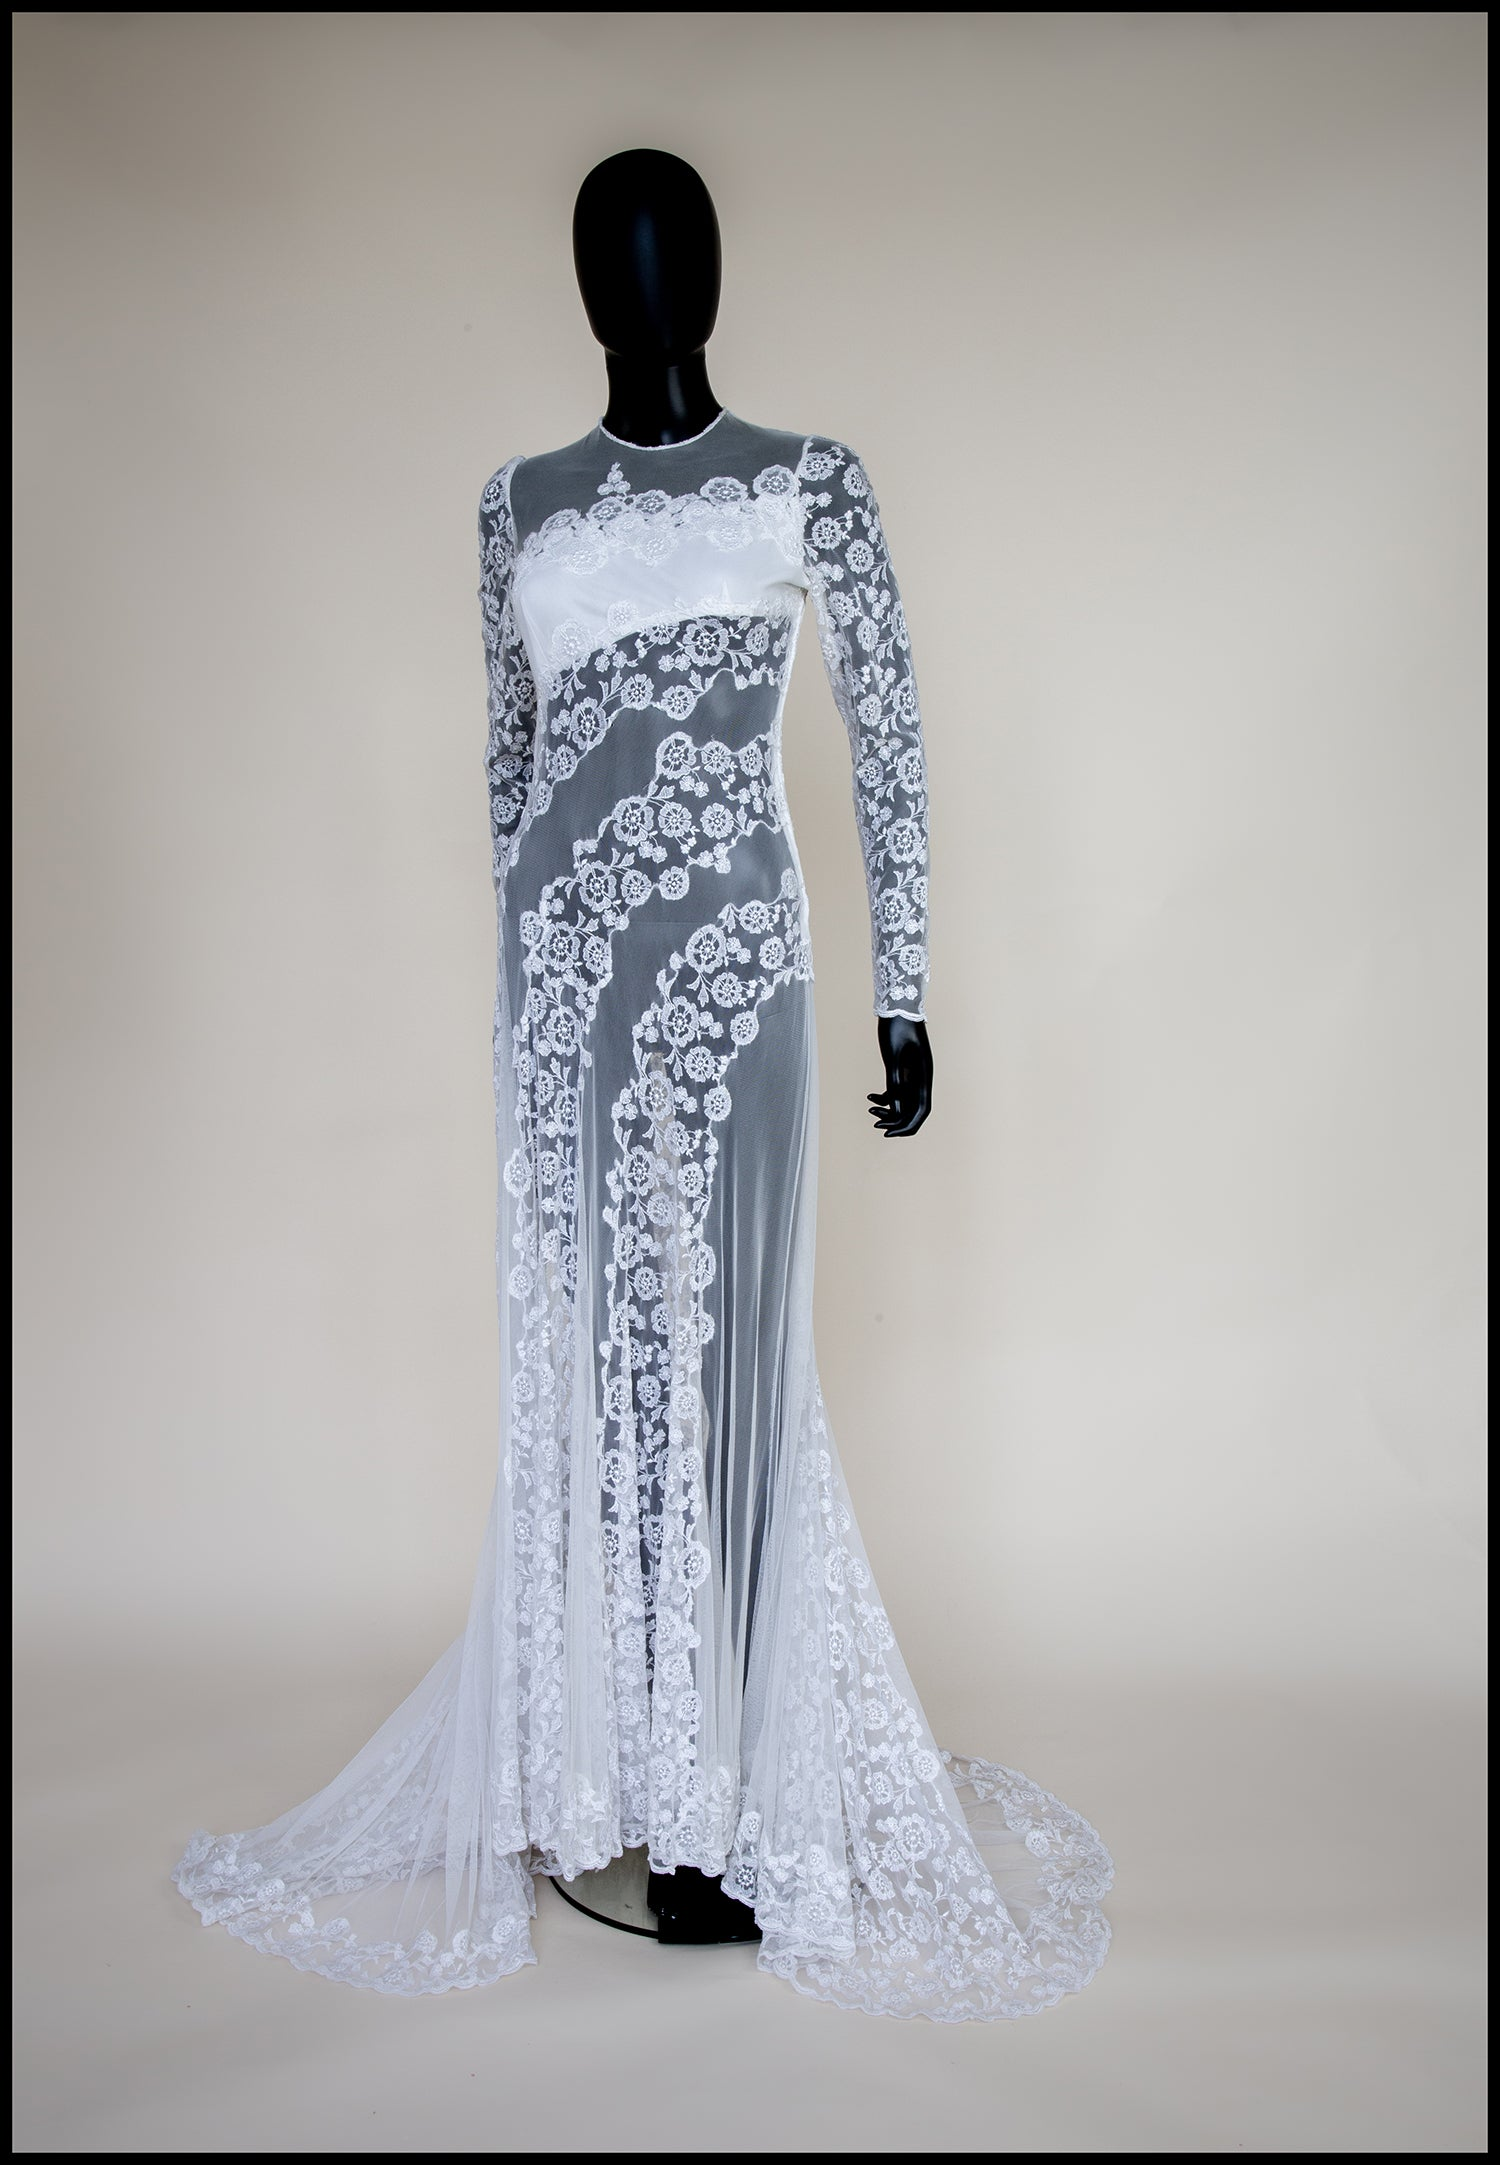 vintage white embroidered sheer lace 1930s style gown alexandra king